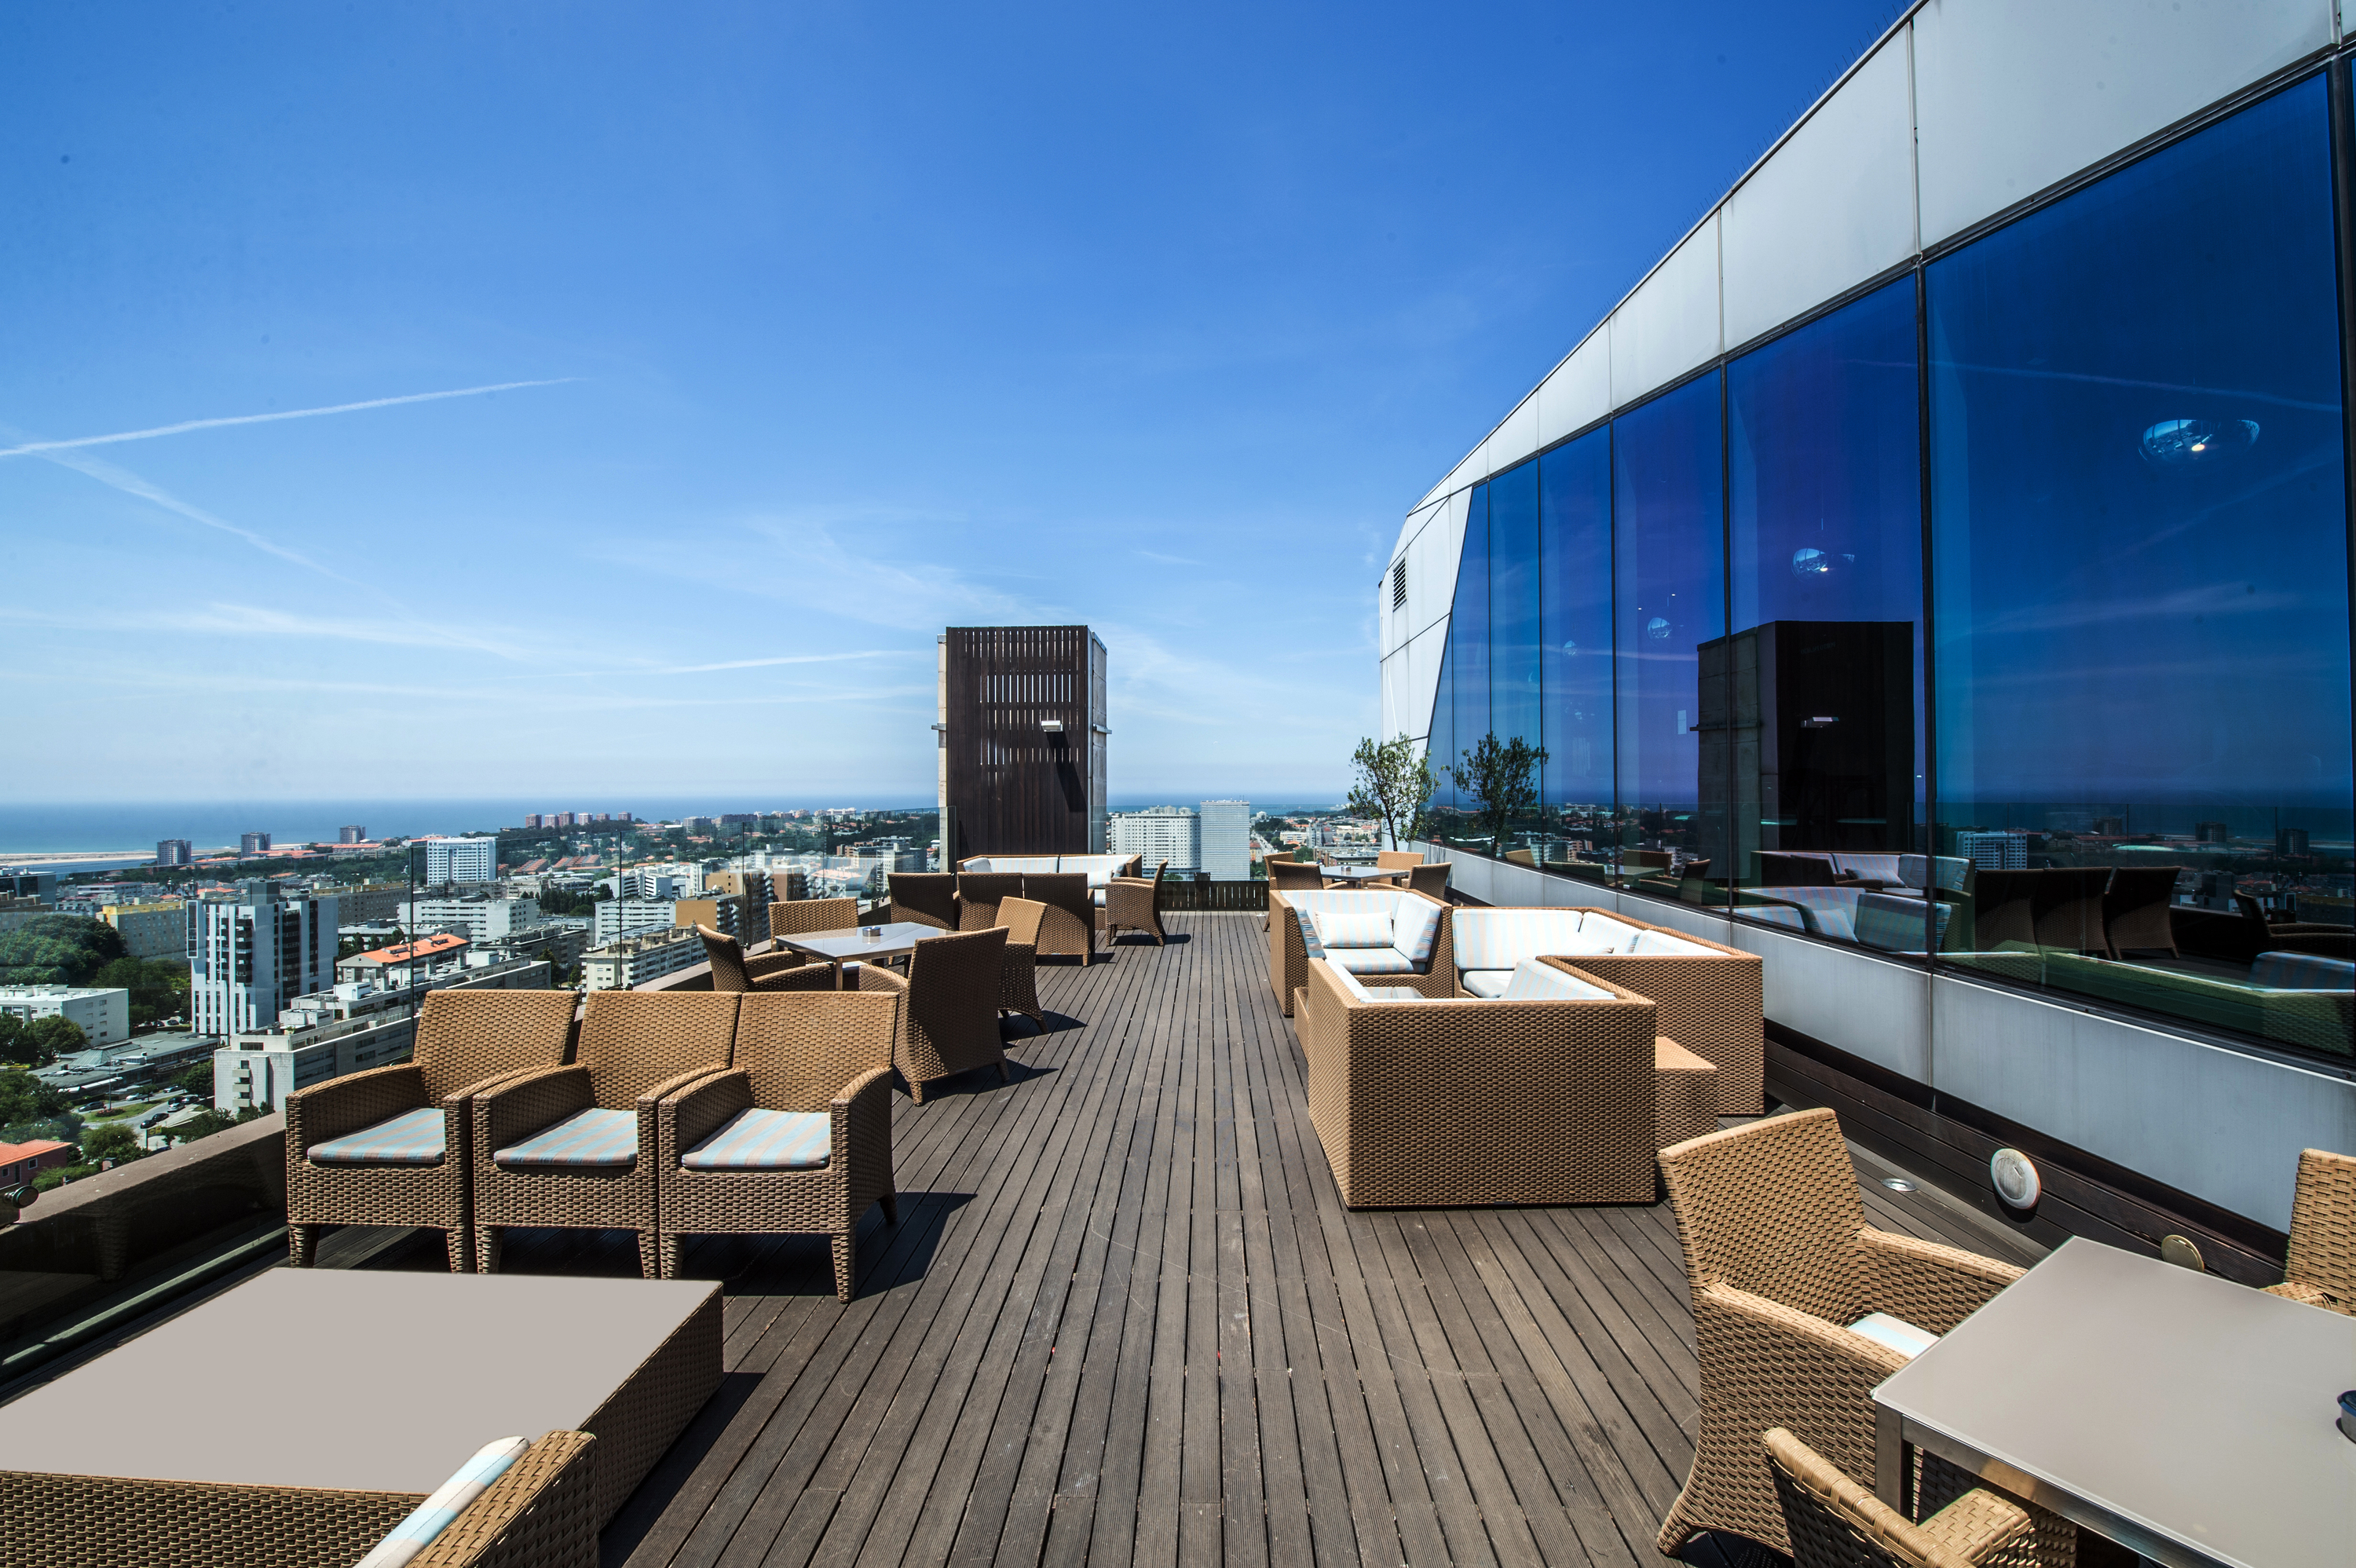 The Best Rooftop Bars in Portugal best rooftop bars in portugal The Best Rooftop Bars in Portugal 17   Restaurant Bar 2